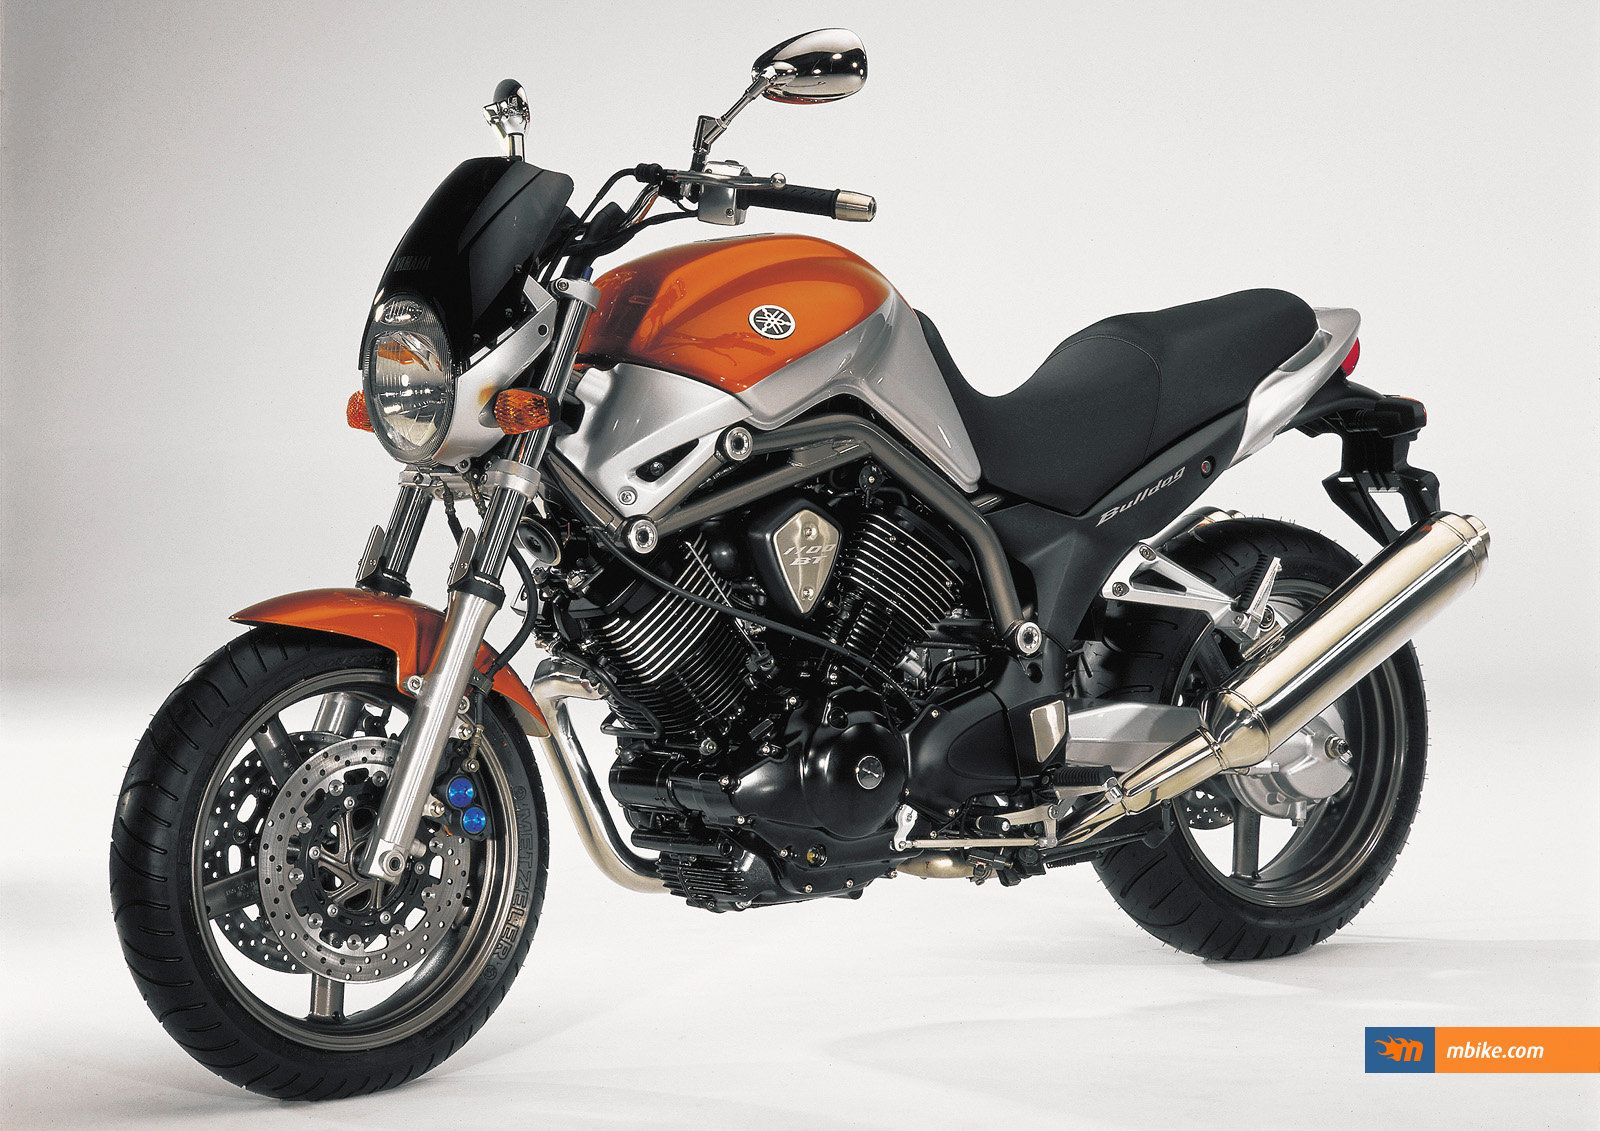 Beste This is what i ride: Yamaha BT 1100 (Bulldog) | Motorcycle VT-16